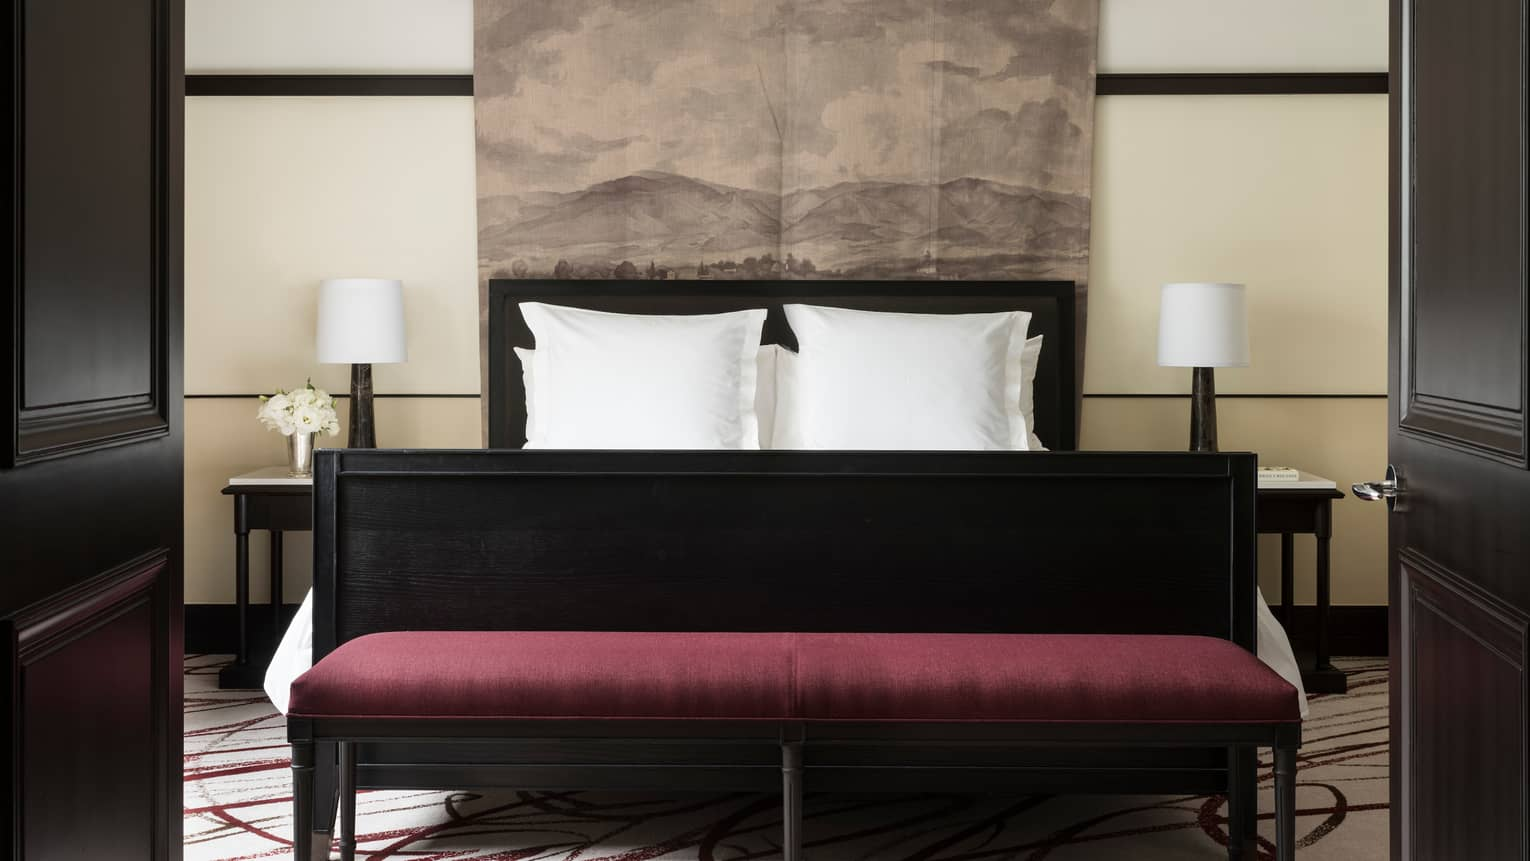 Open black French doors revealing Executive Suite bed, burgundy velvet bench at foot